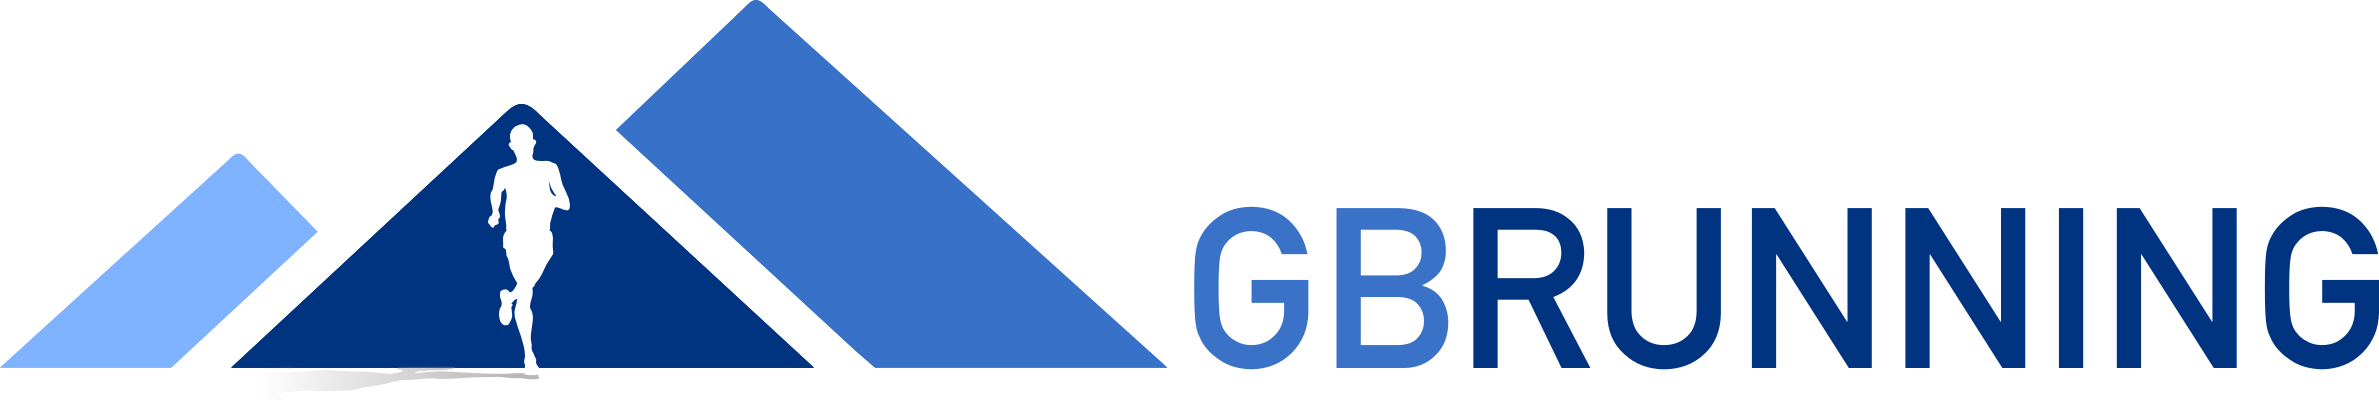 GB Running LLC Logo